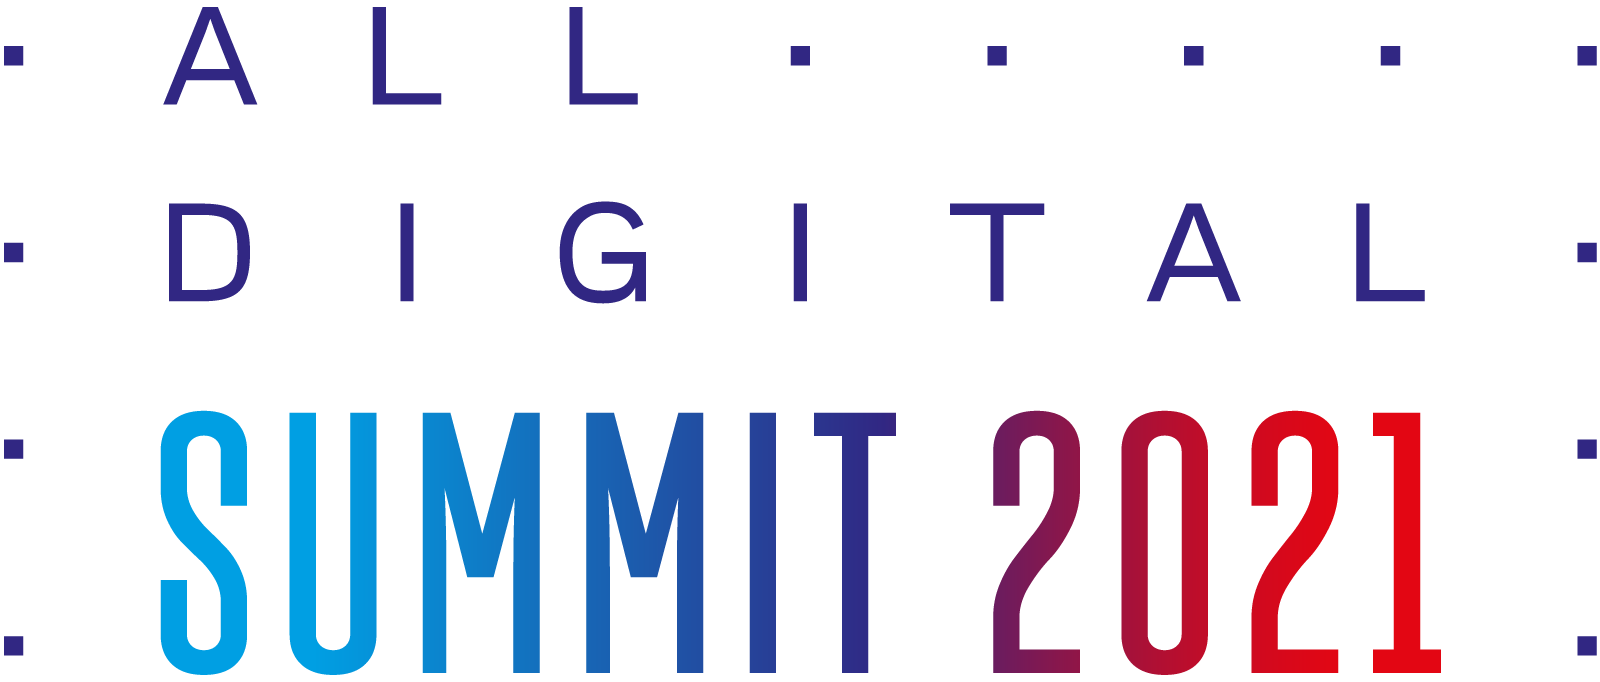 cropped-all-digital-summit-transparent-background.png